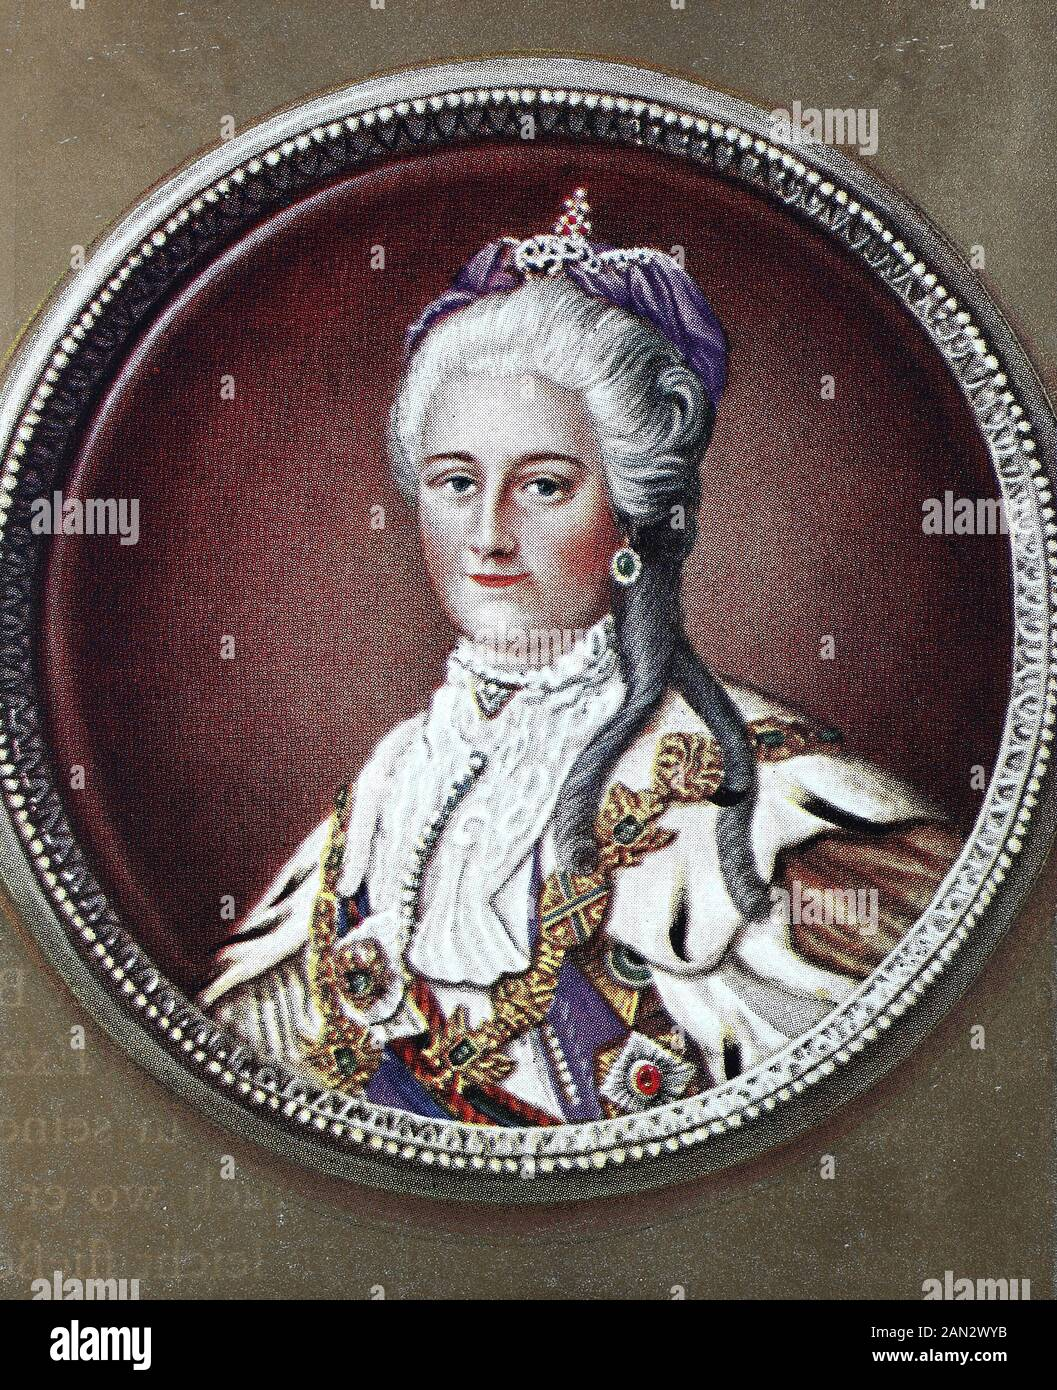 Catherine II, Yekaterina Alekseyevna, 2 May 1729 – 17 November 1796, also known as Catherine the Great, Yekaterina Velikaya, born Princess Sophie of Anhalt-Zerbst, was Empress of Russia from 1762 until 1796,   /  Catherine II, Yekaterina Alekseyevna, 2. Mai 1729 - 17. November 1796, auch bekannt als Catherine the Great, Yekaterina Velikaya, geborene Prinzessin Sophie von Anhalt-Zerbst, war von 1762 bis 1796 Kaiserin von Russland, Historisch, digital improved reproduction of an original from the 19th century / digitale Reproduktion einer Originalvorlage aus dem 19. Jahrhundert Stock Photo